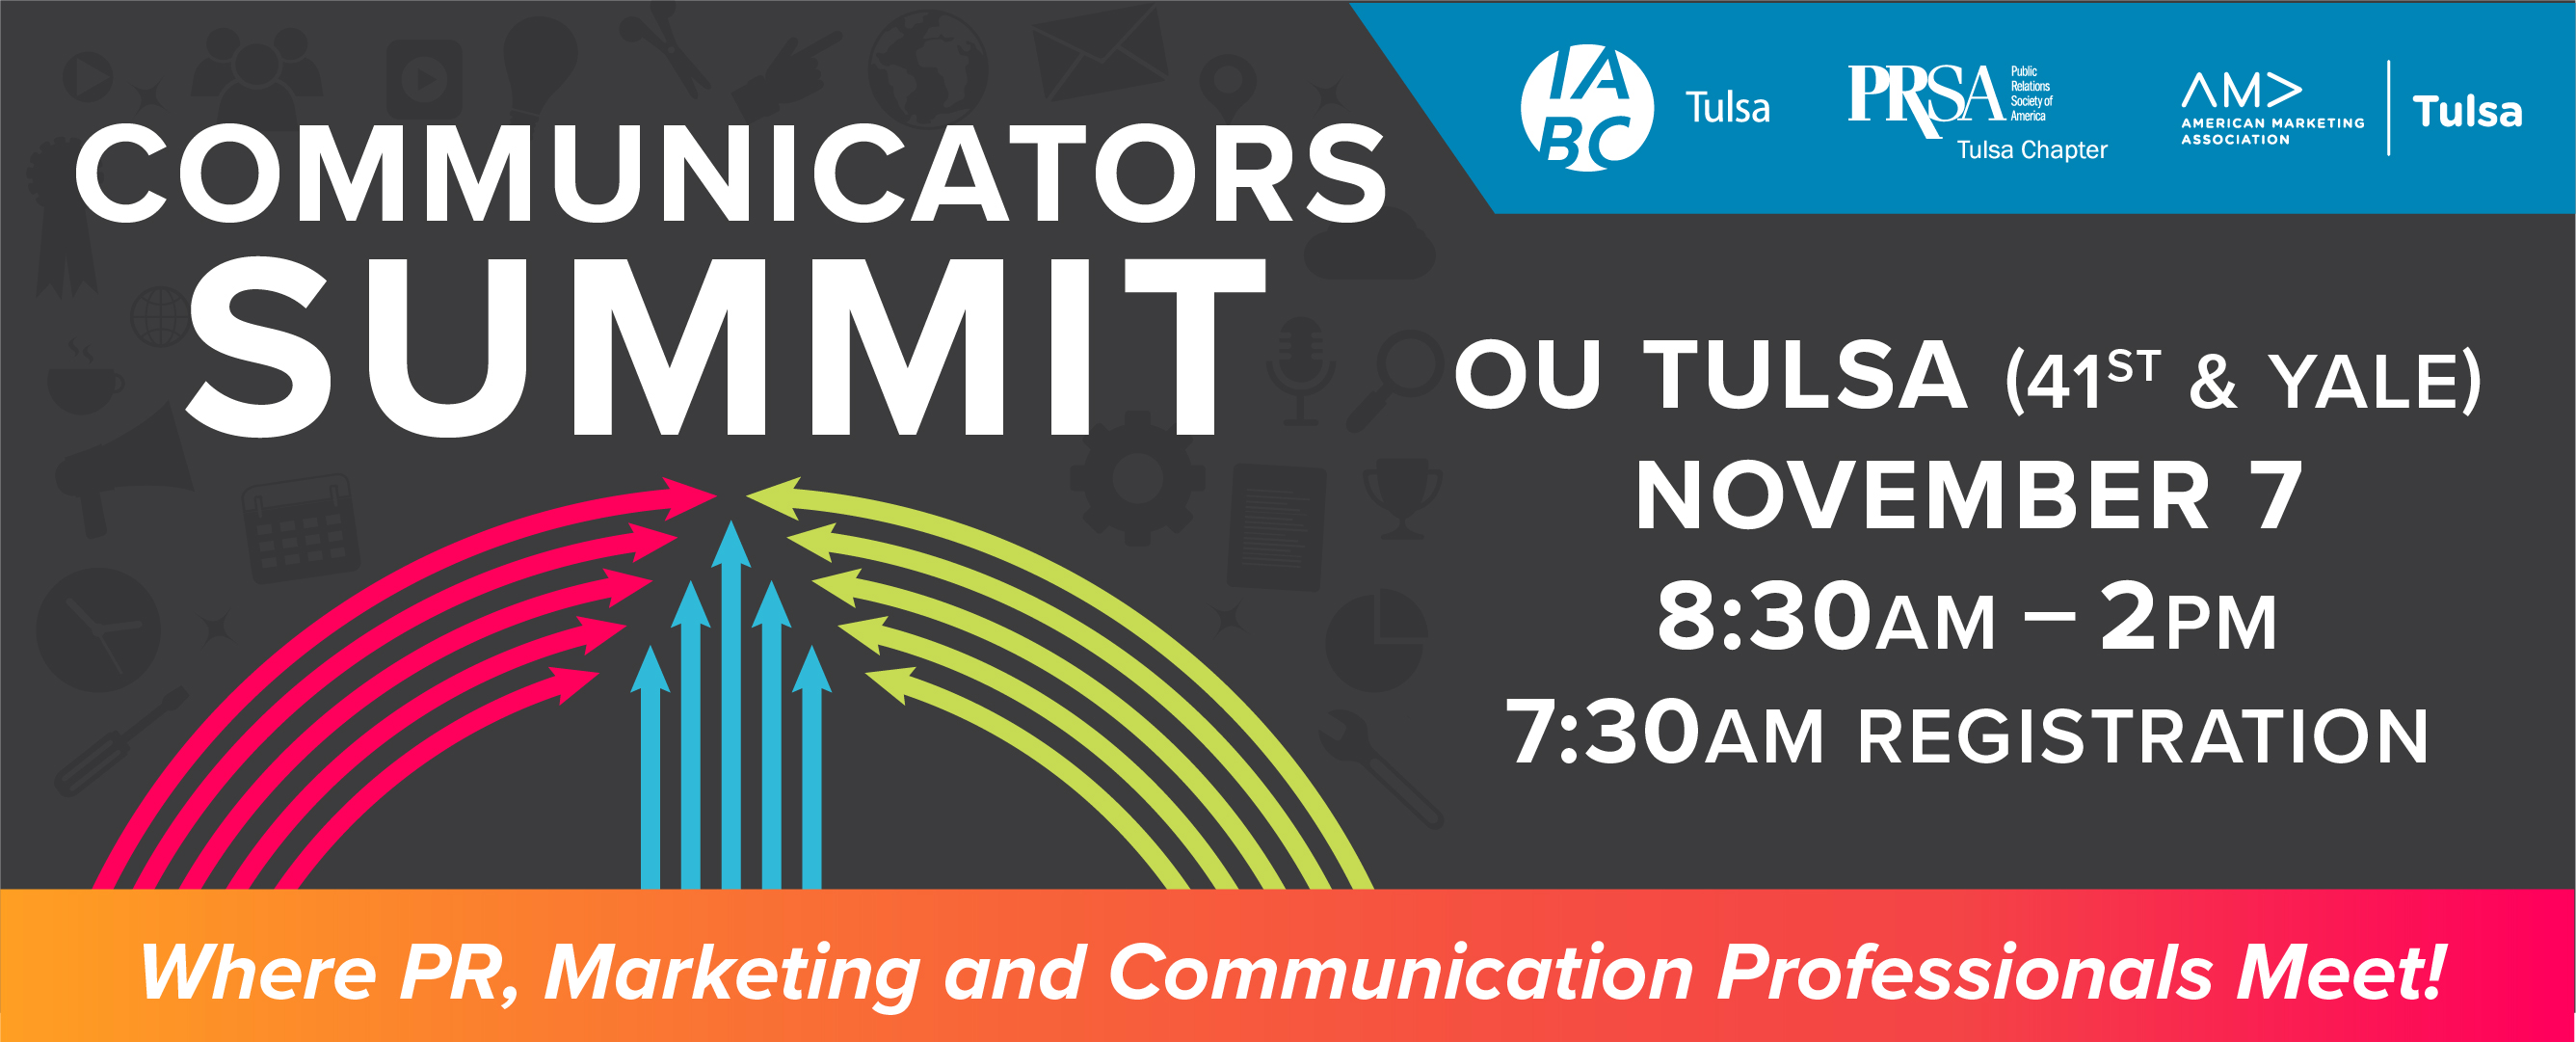 Communicators Summit